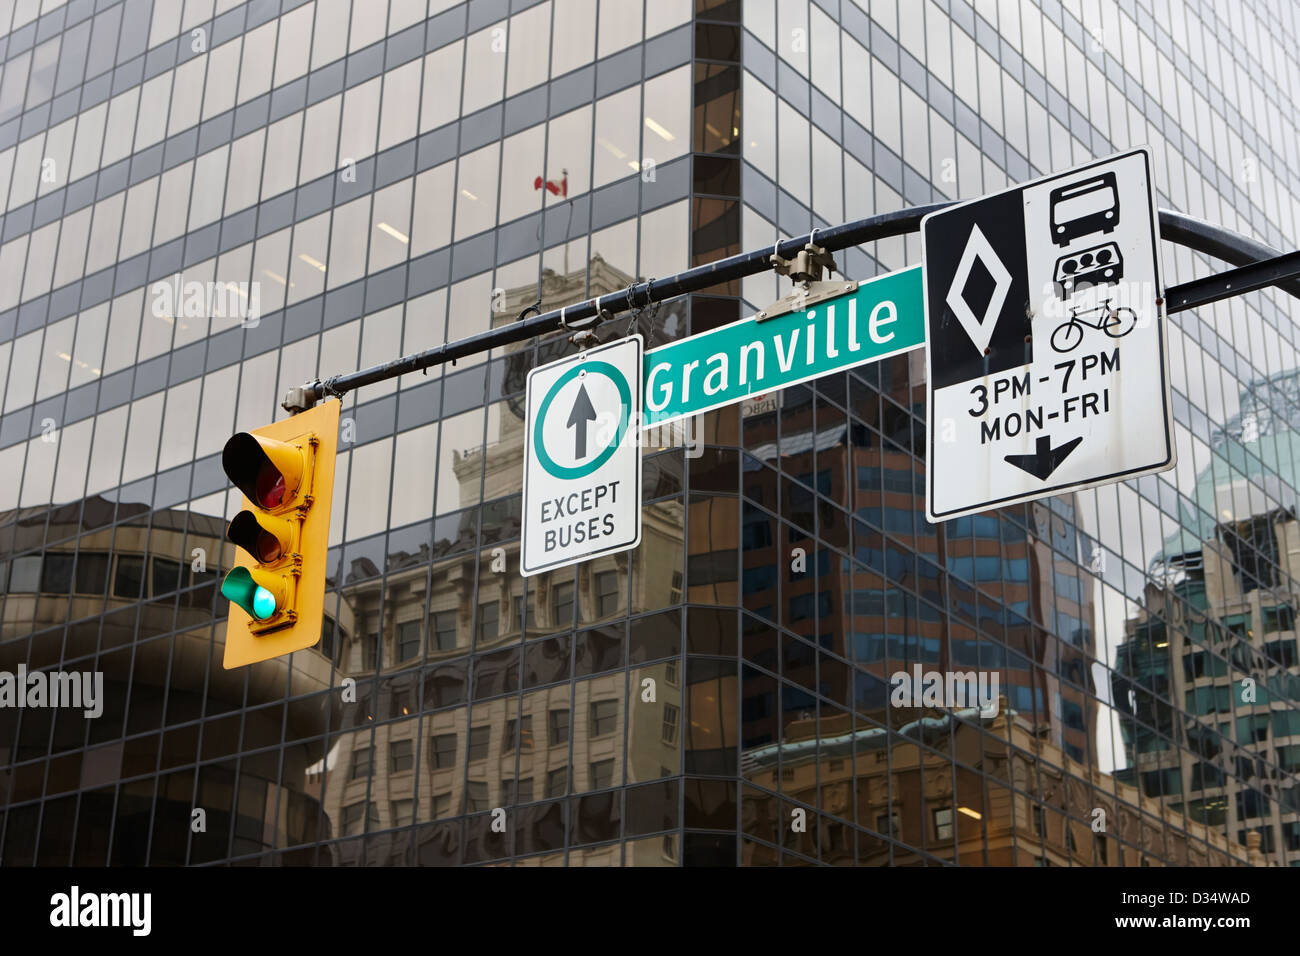 granville street streetsign in downtown Vancouver BC Canada - Stock Image